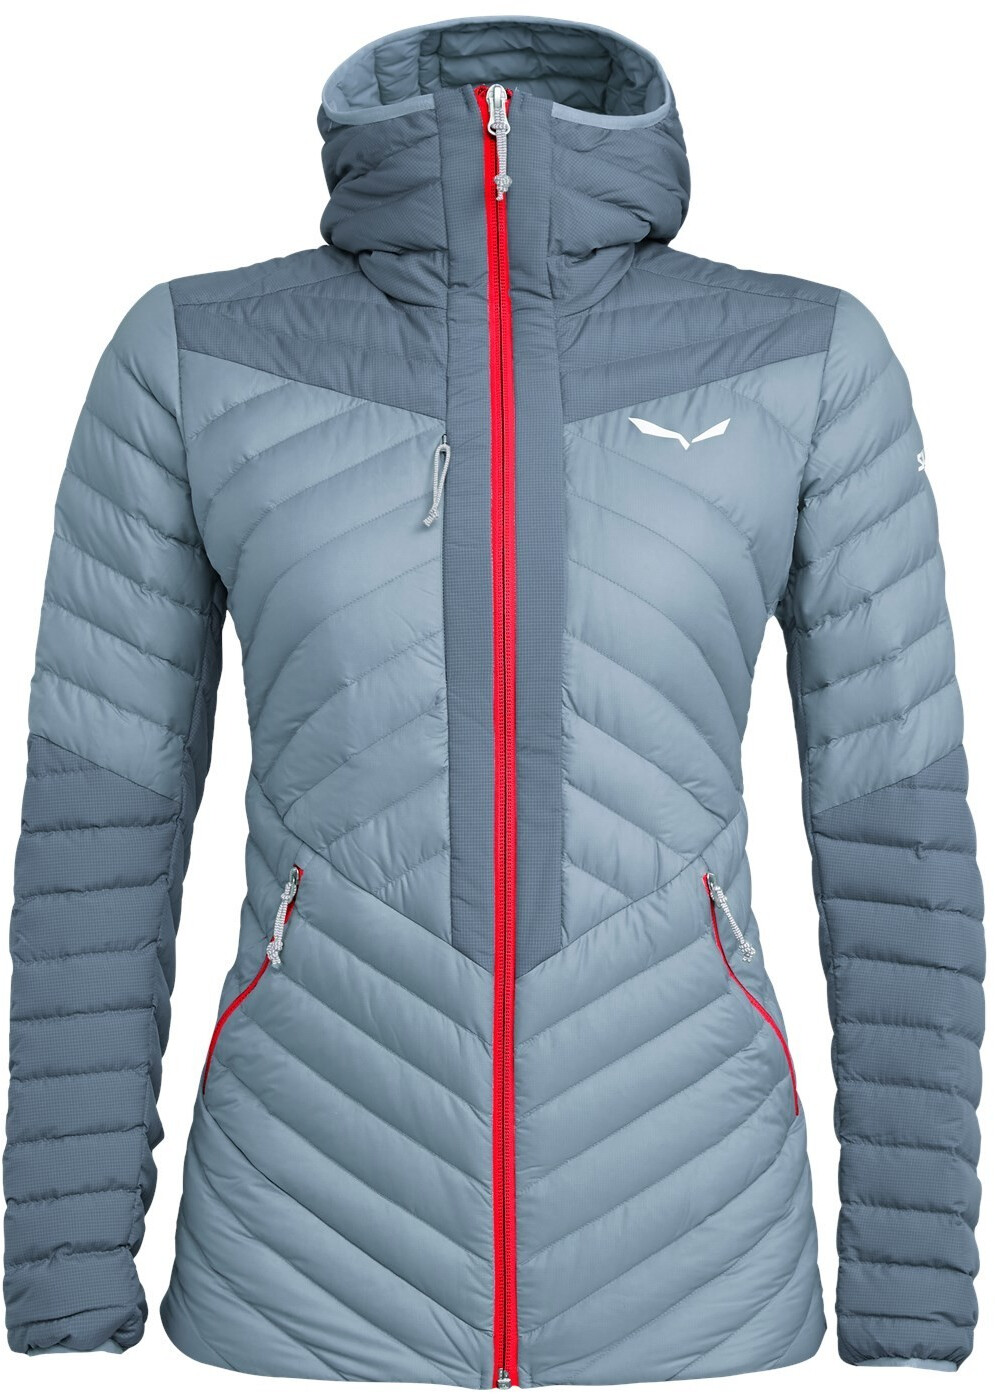 Salewa Ortles Light 2 Down Hooded Jacket Women ab € 142,70